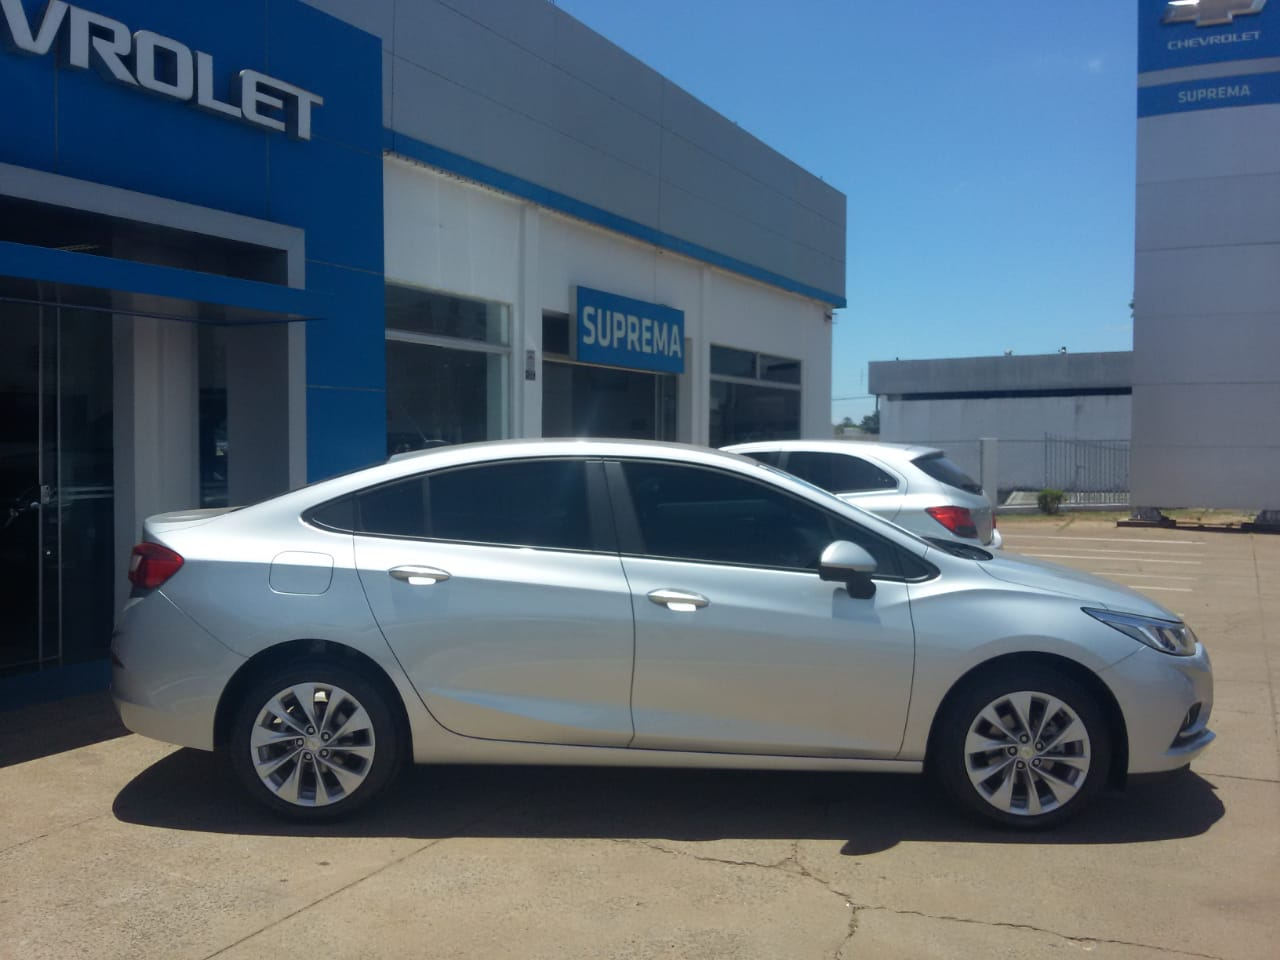 CHEVROLET NOVO CRUZE TURBO 1.4 2017